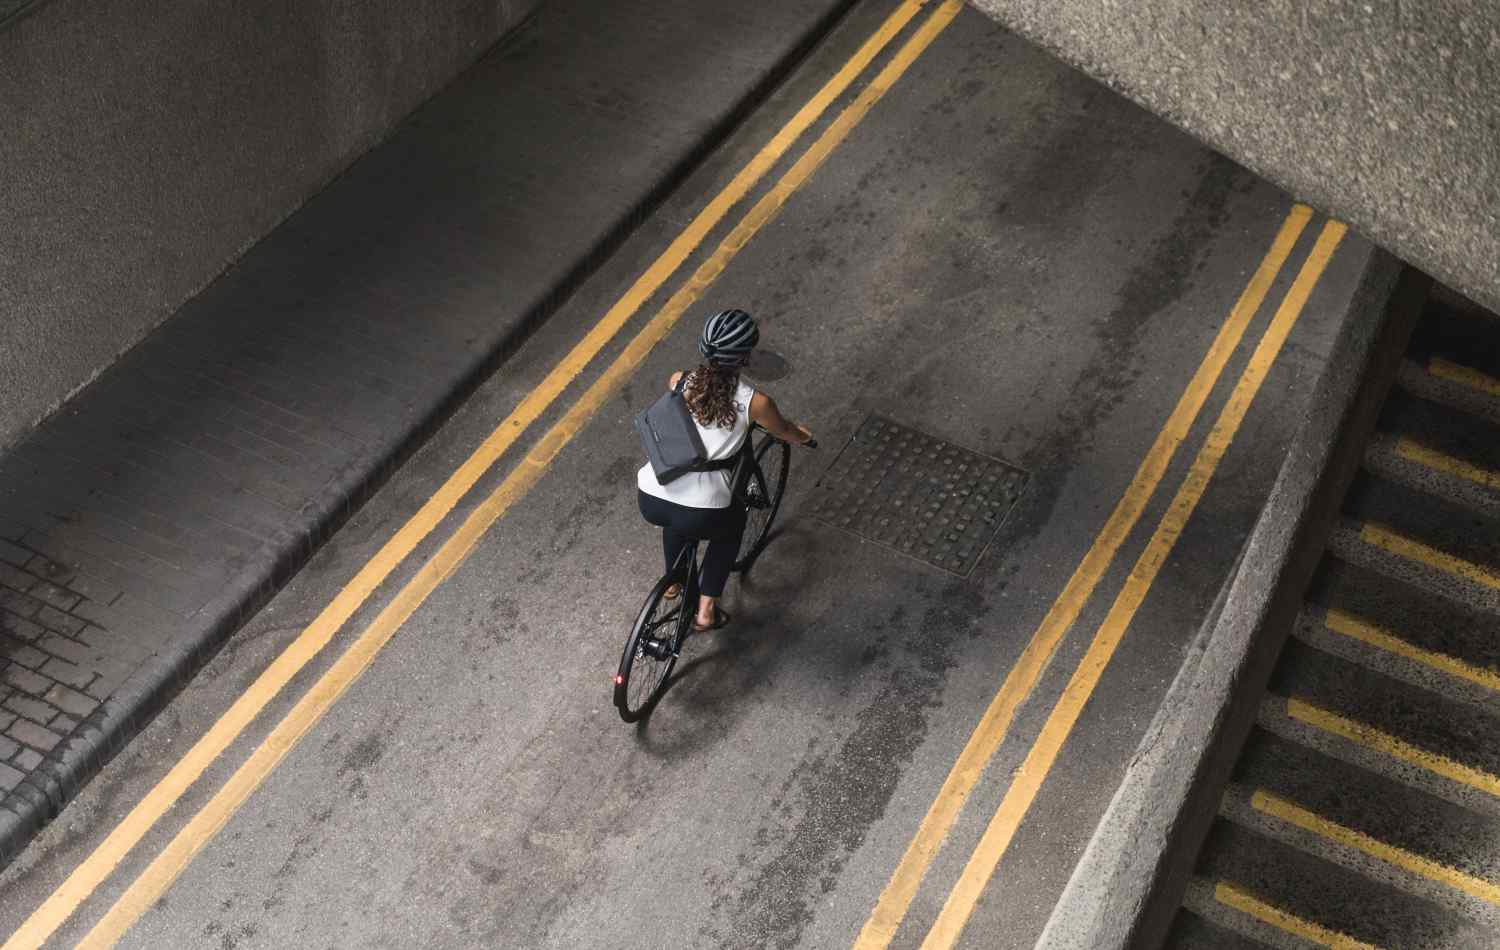 A woman cycles through the city with an Apidura City Messenger on her back